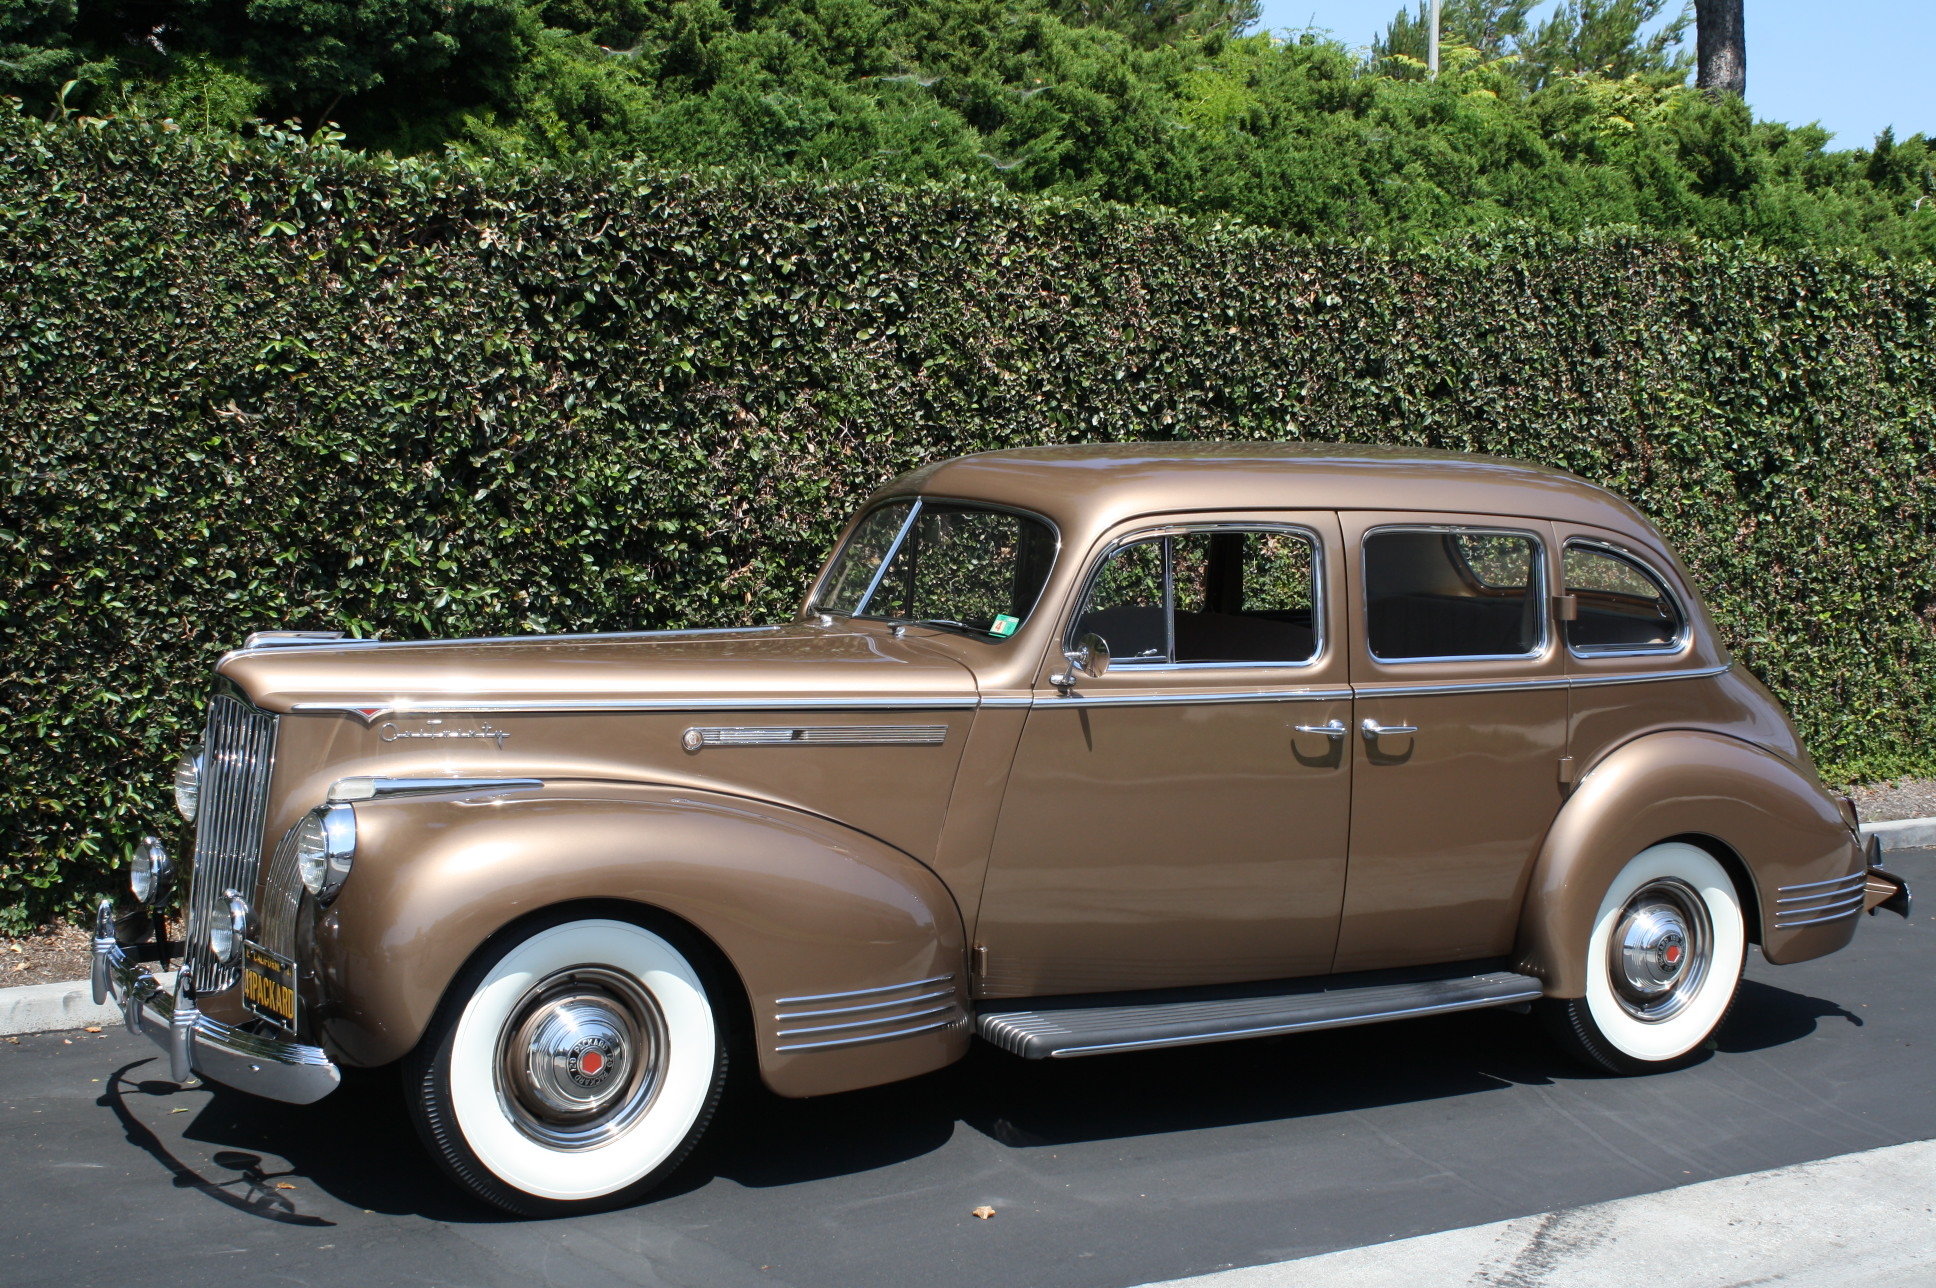 1941 Packard 120 Sedan The Vault Classic Cars